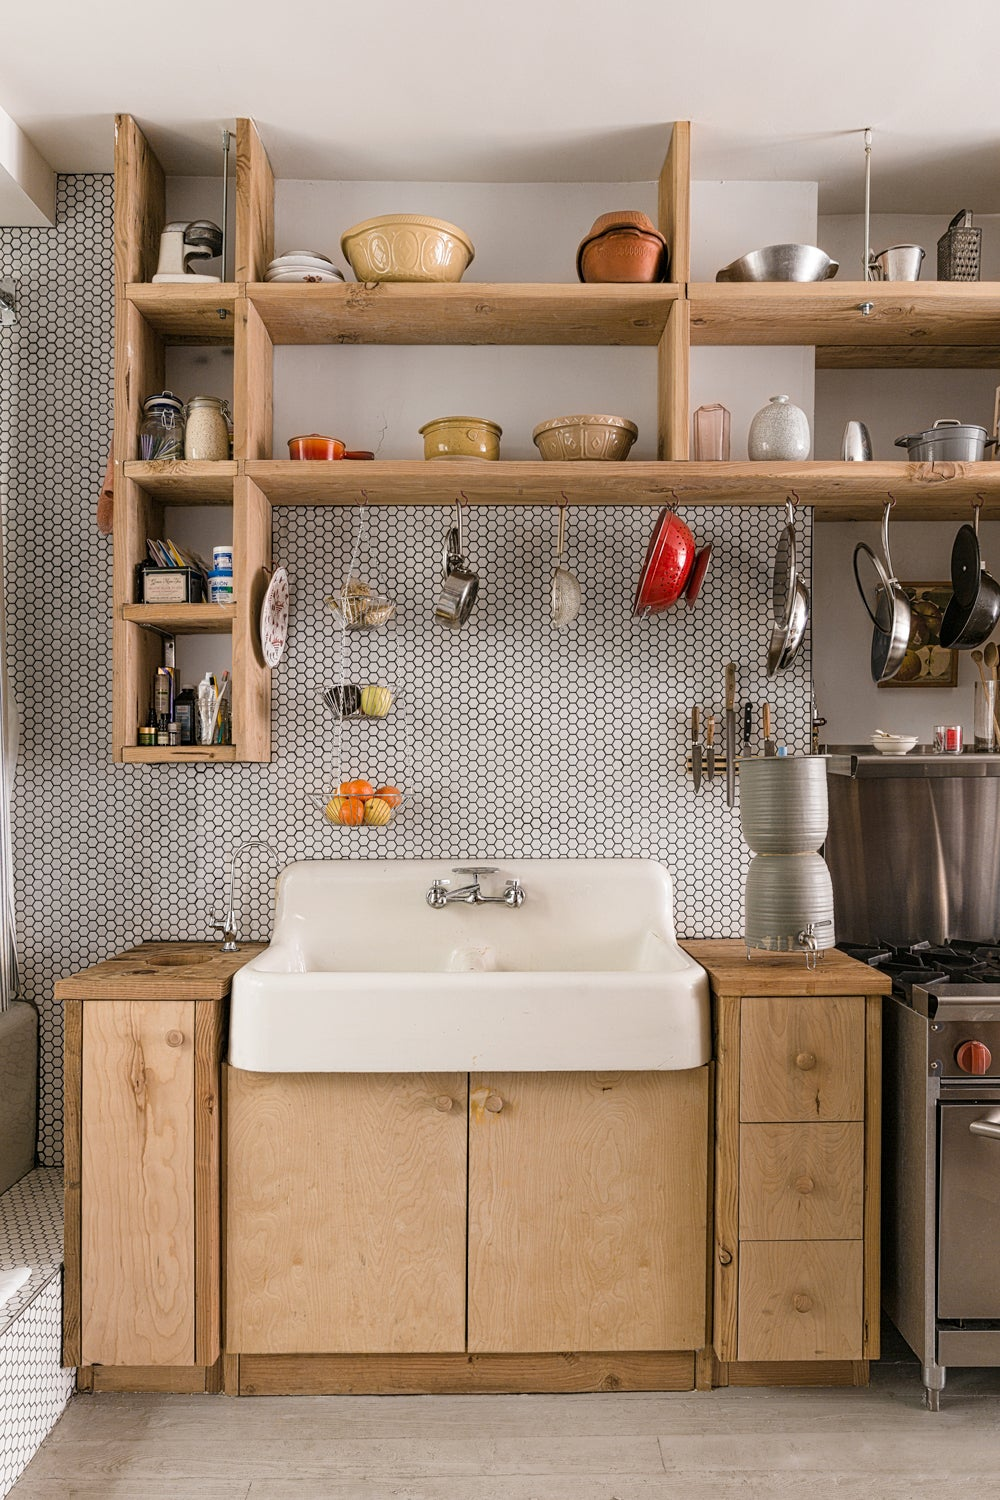 wood counters and wood shelving in kitchen